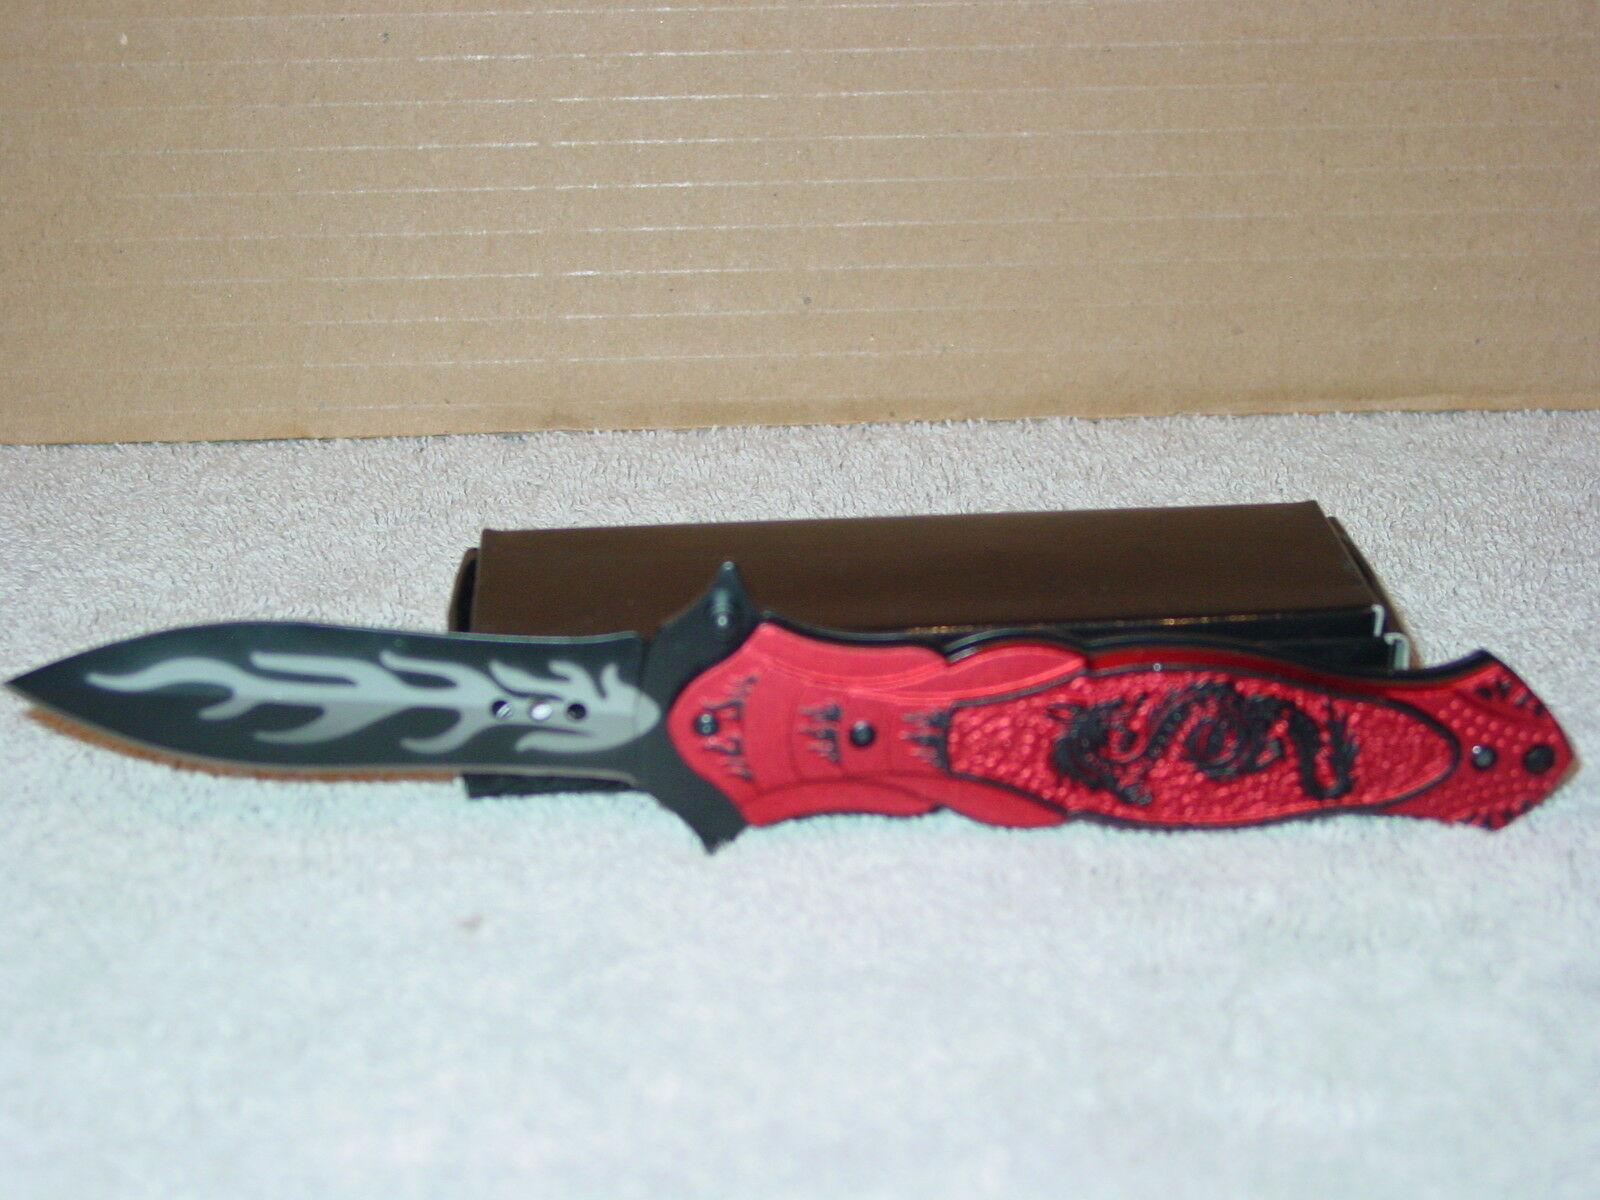 BLACK DRAGON RED HANDLE SPRING ASSISTED KNIFE WITH BELT CLIP